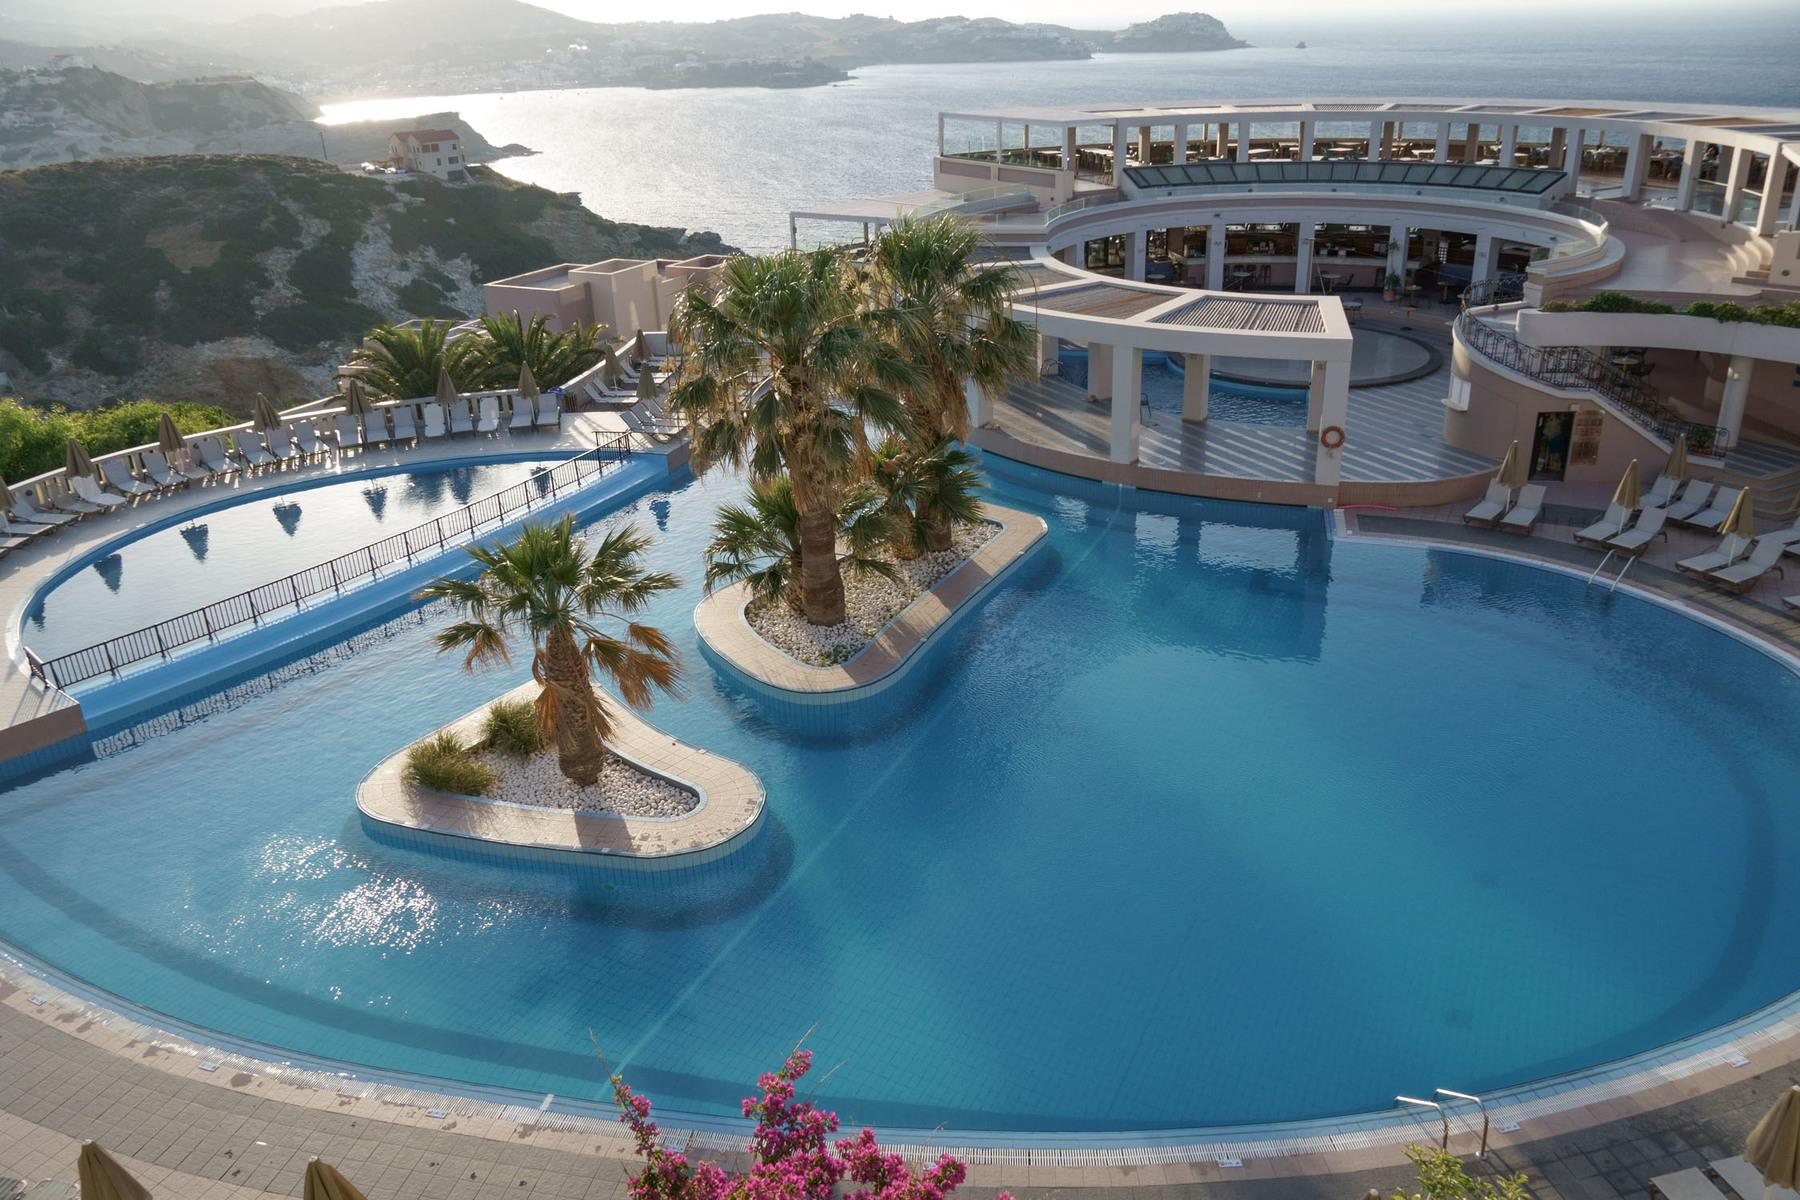 CHC Athina Palace Resort & Spa in Aghia Pelagia, Crete, Greek Islands